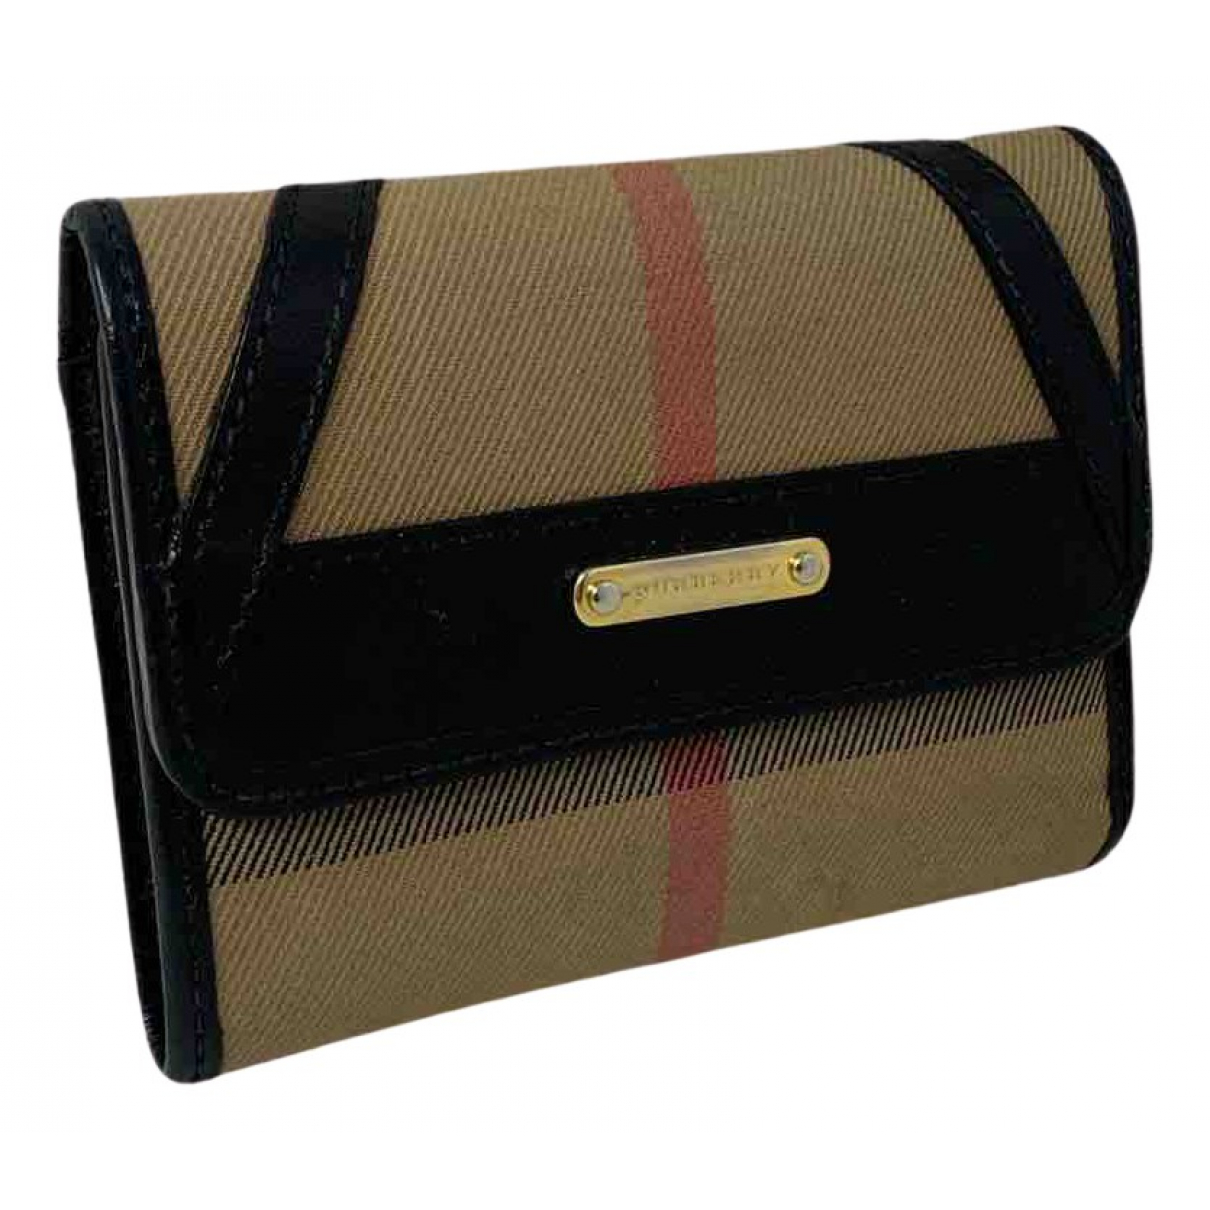 Cartera de Lona Burberry